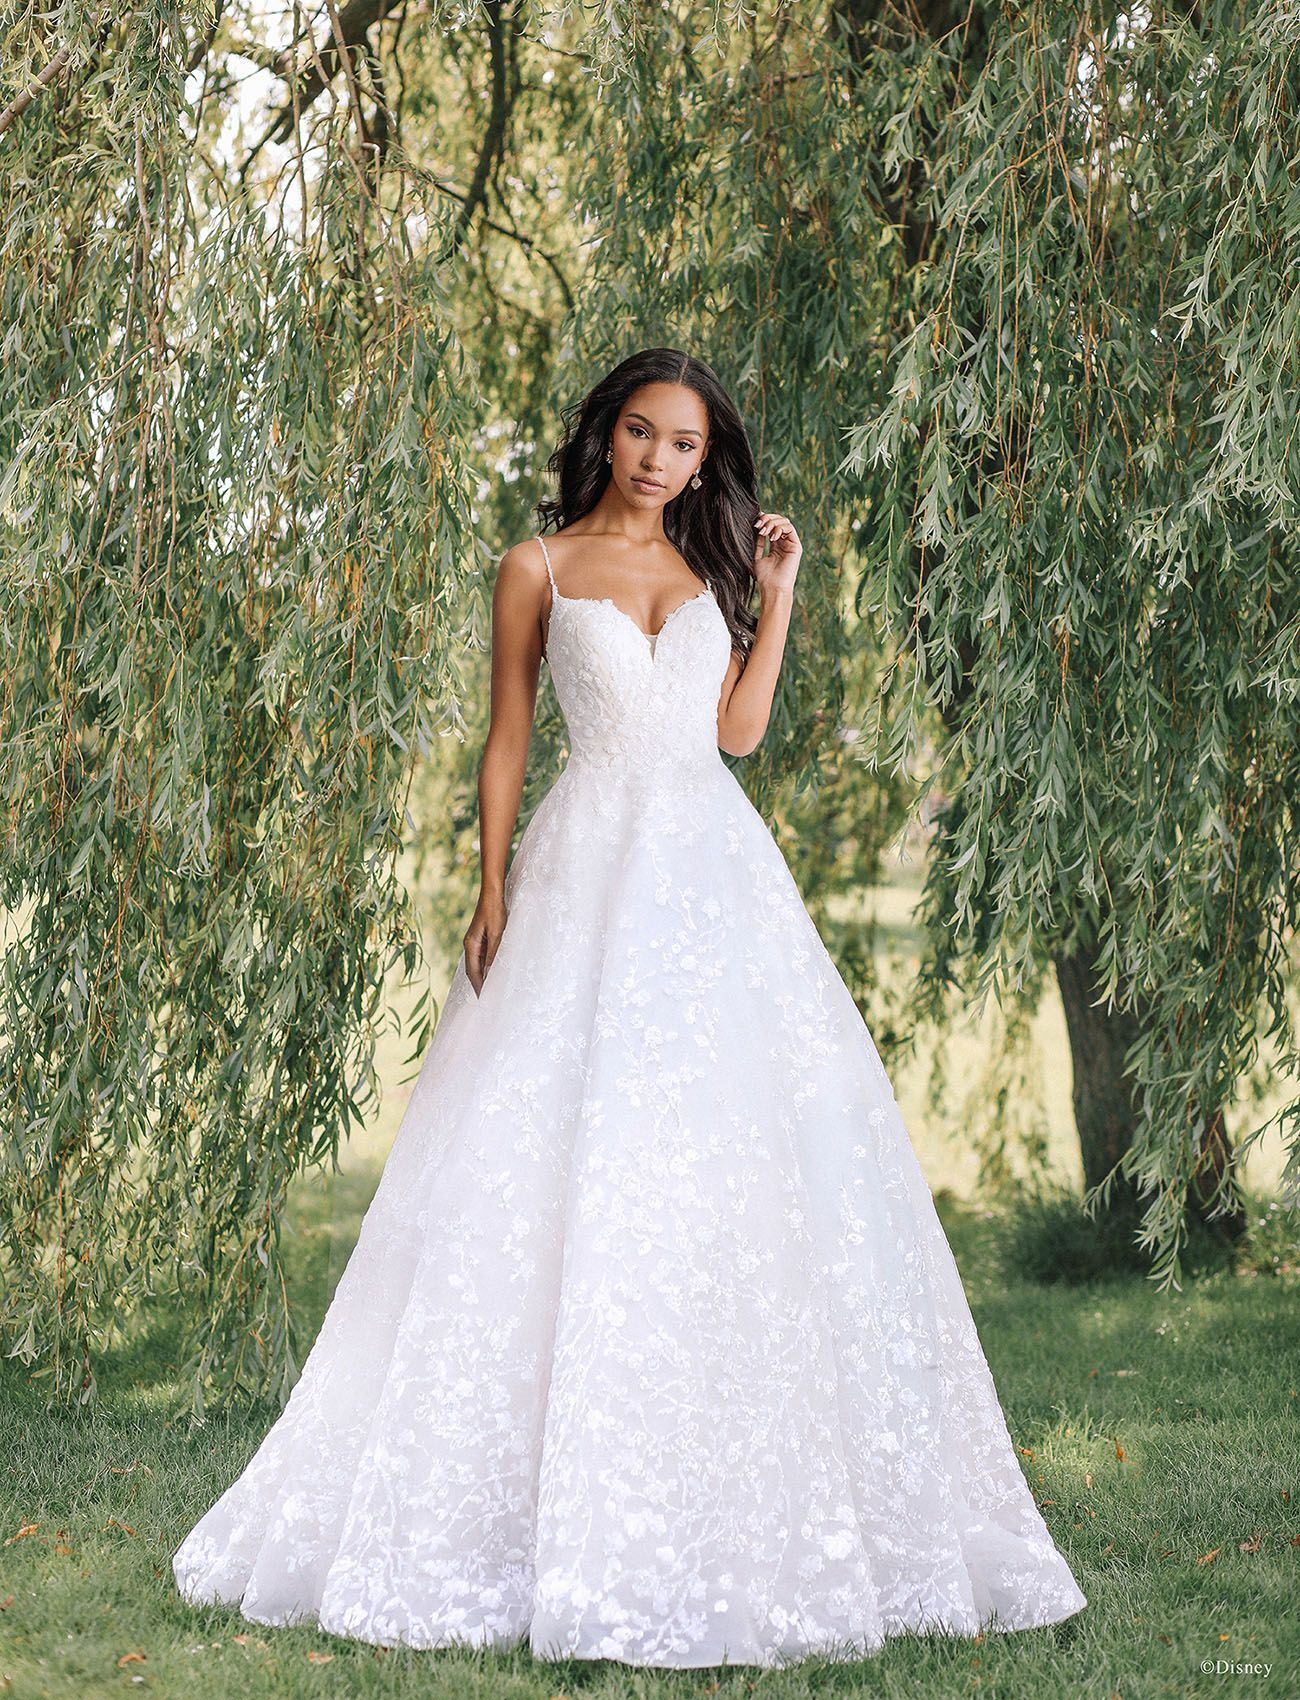 Once Upon A Wedding Dress New Allure Bridals Collection Inspired By Disney Princesses Disney Inspired Wedding Dresses Sparkle Wedding Dress Disney Wedding Dresses [ 1700 x 1300 Pixel ]